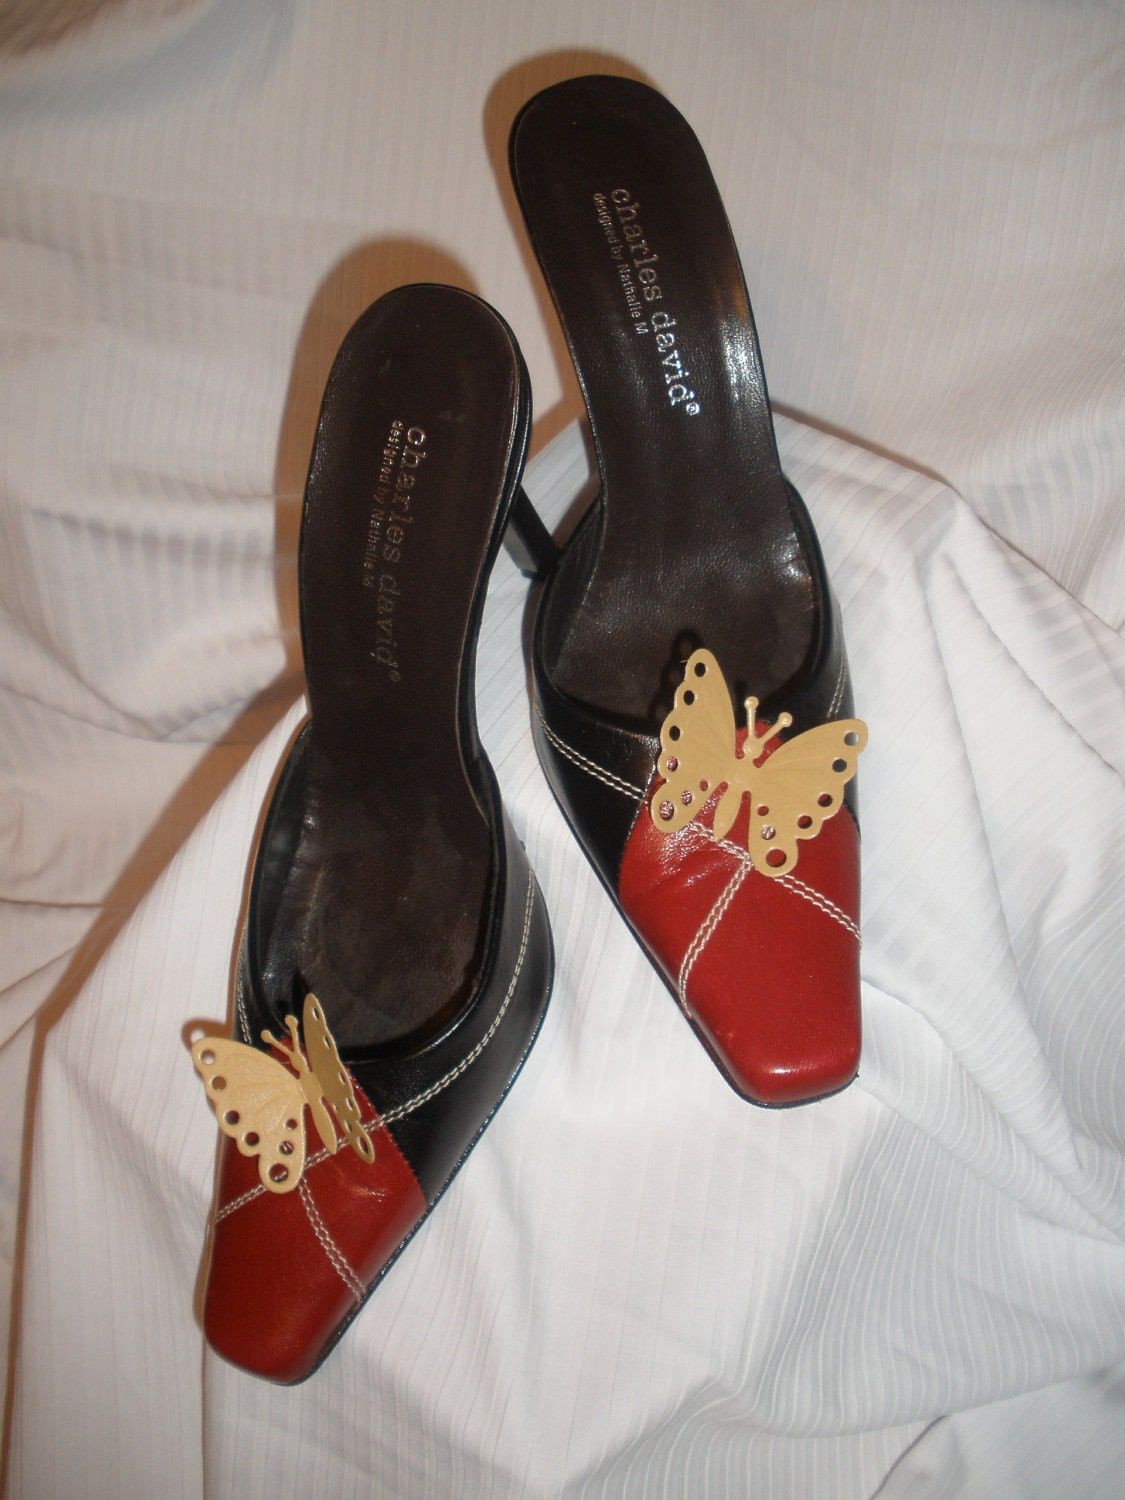 Adorable Butterfly Stick On's Shoe Accessories for High Heels, Flat, Bridal Party, Women Shoes, Not Shoe Clips